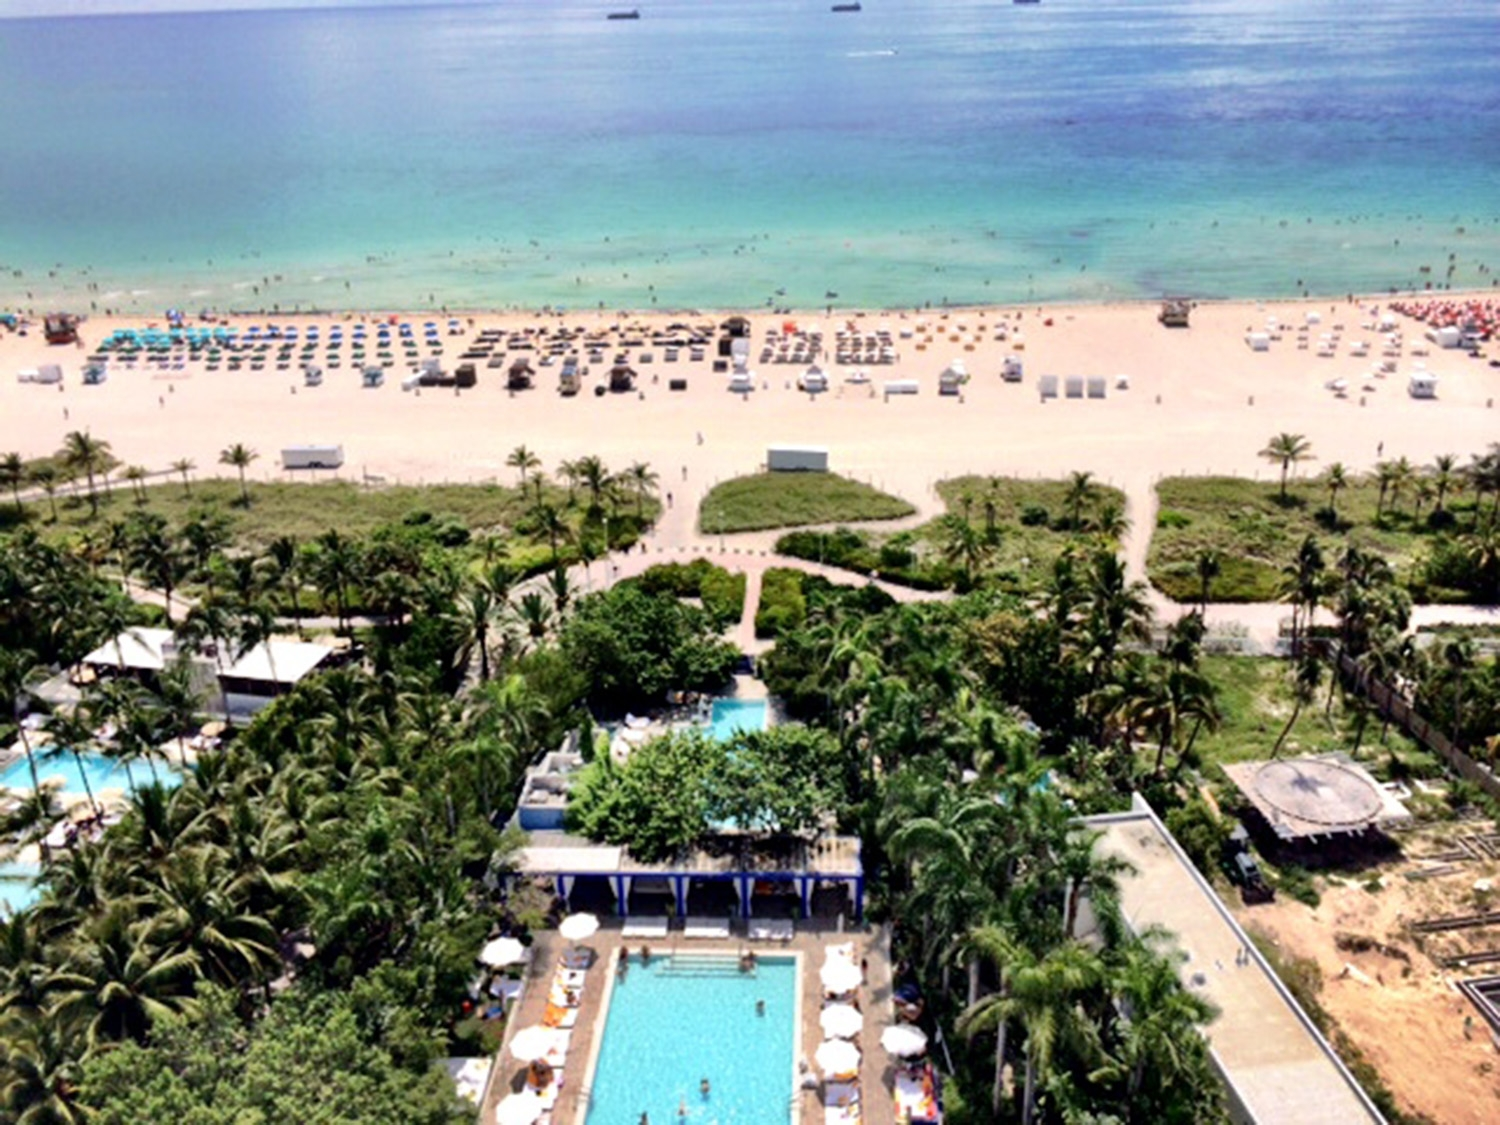 The view of the hotel pool, gardens and sun loungers along the white sand of South Beach